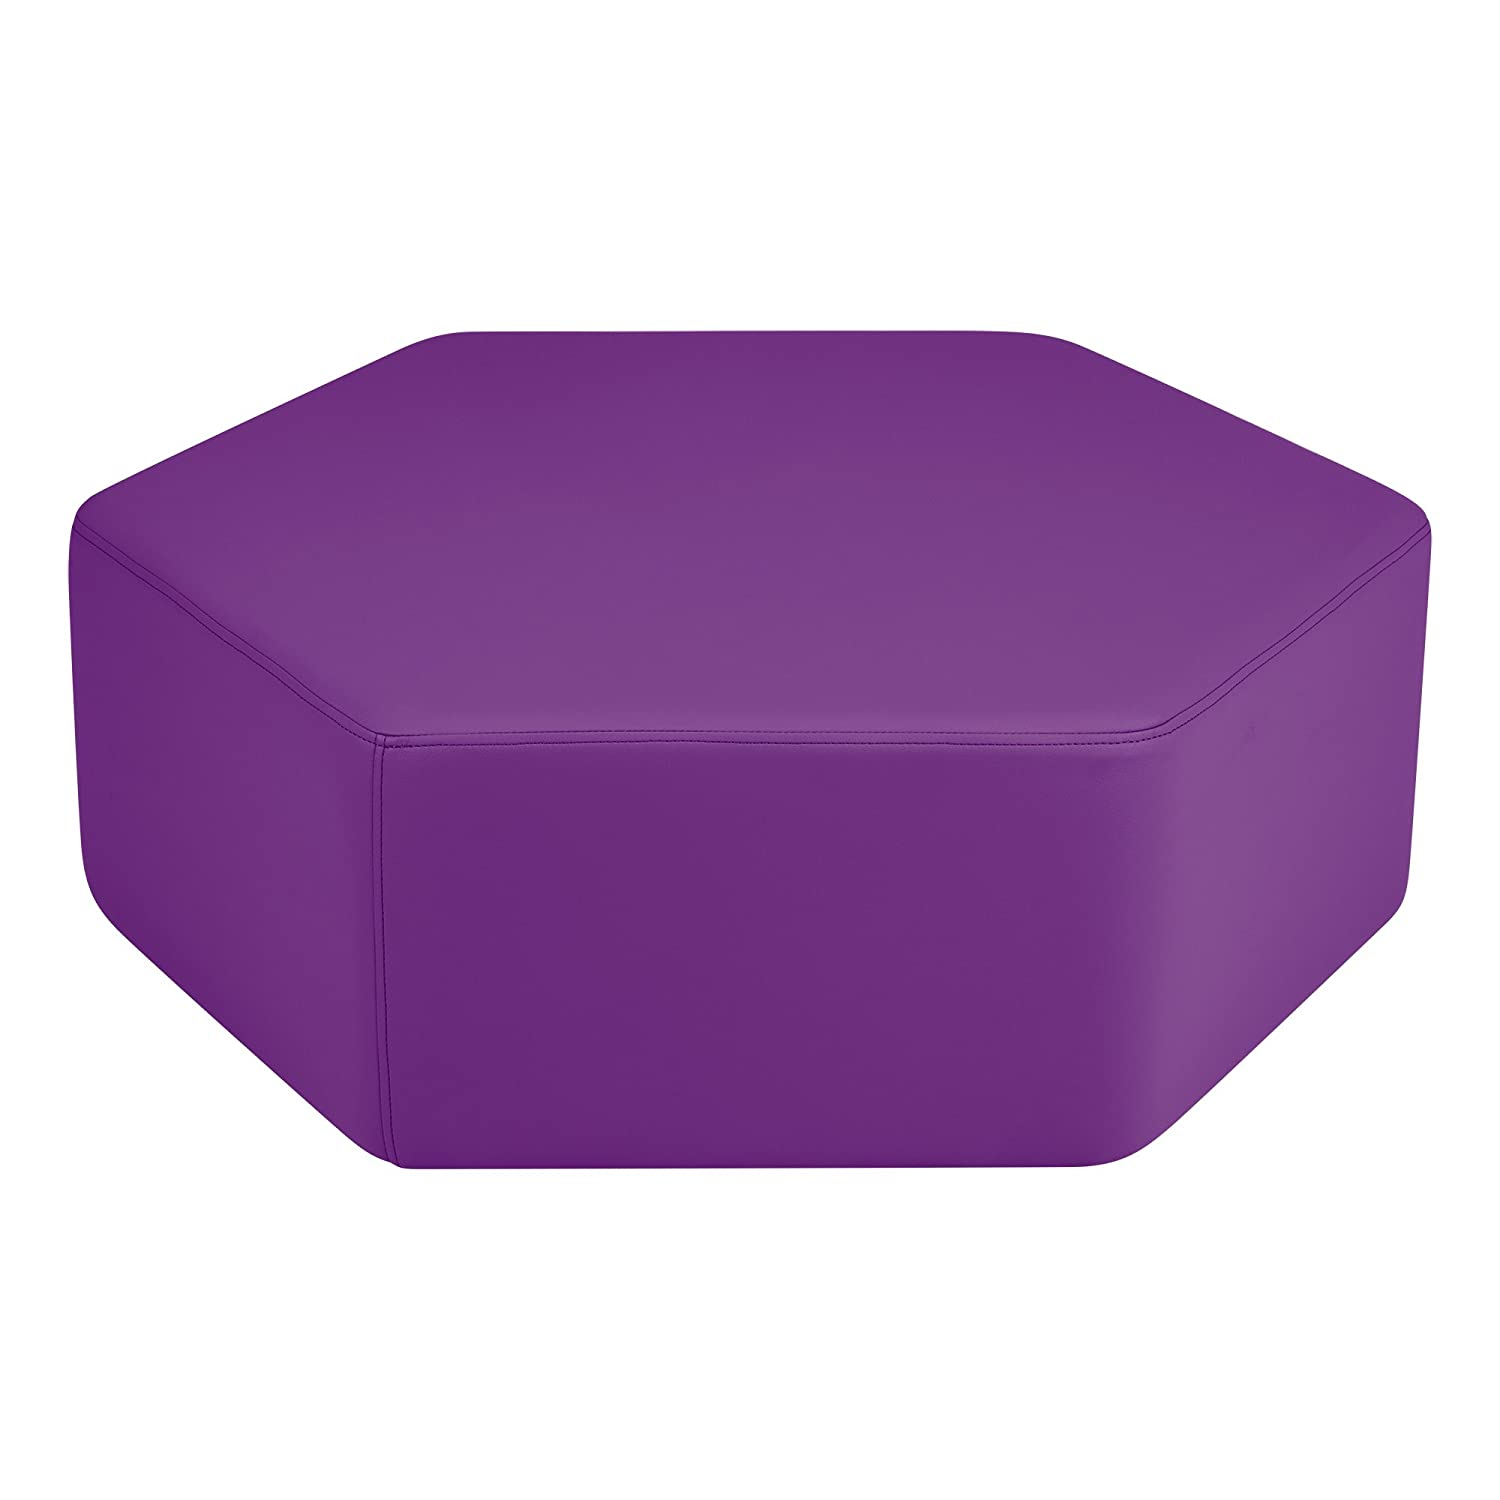 Sprogs SPG-1034GN-A Vinyl Soft Seating 12 Hex Stool Green